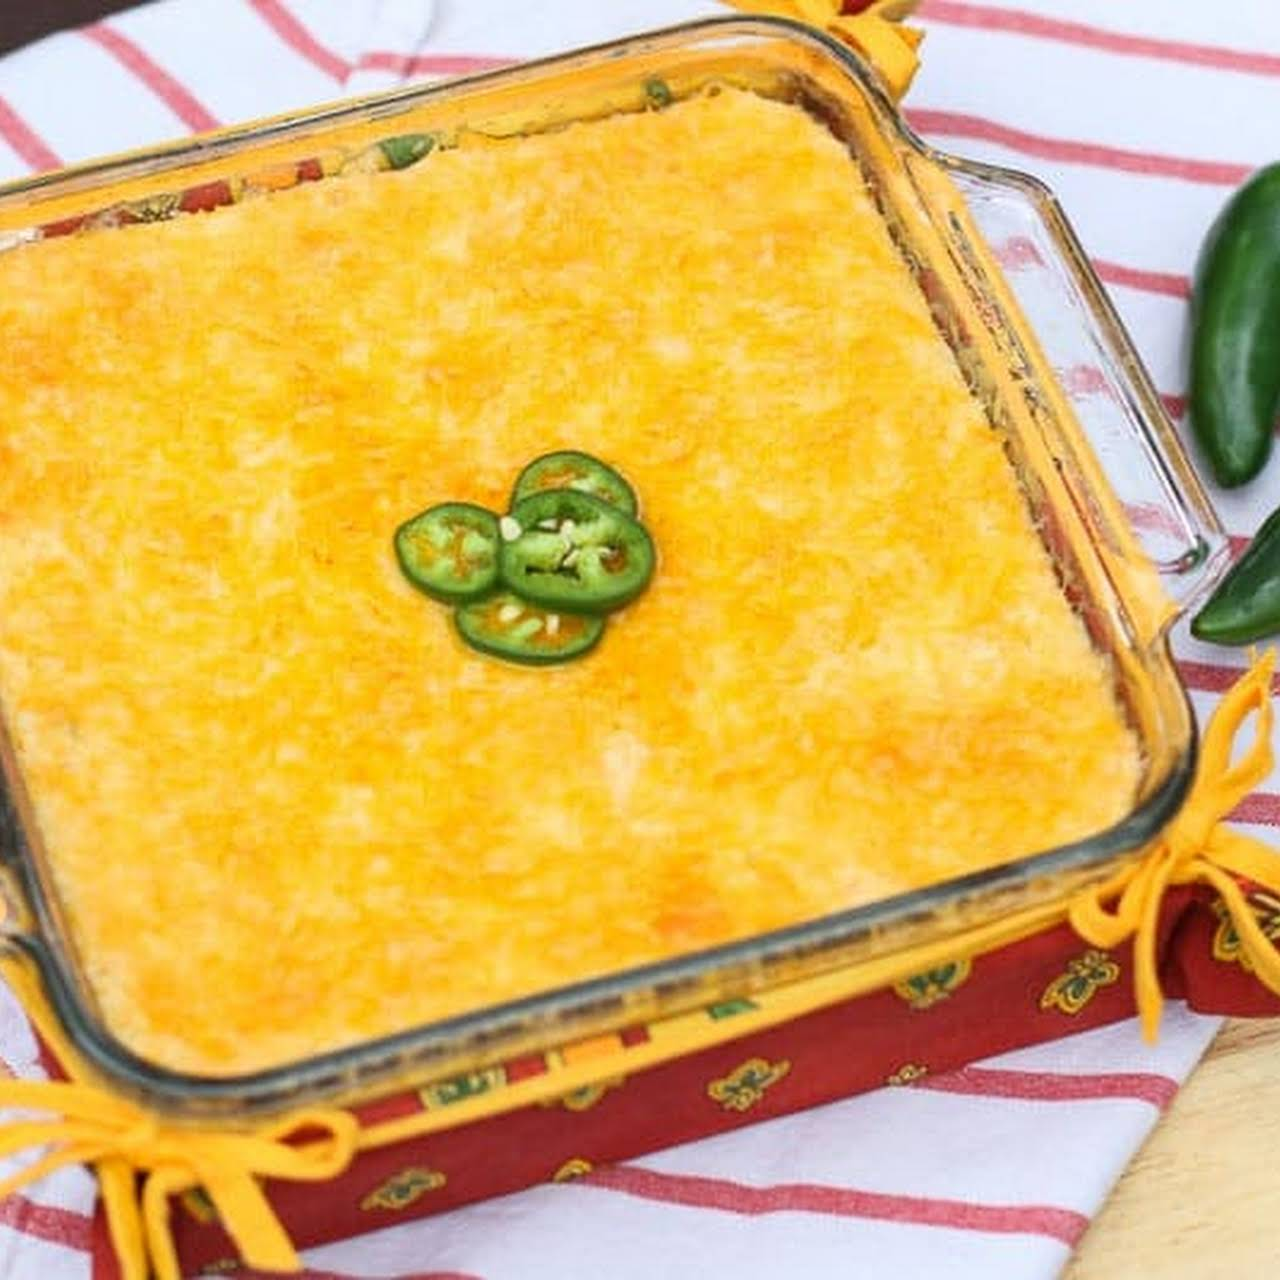 Jalapeno Cheese Grits Recipe (Southern Living)